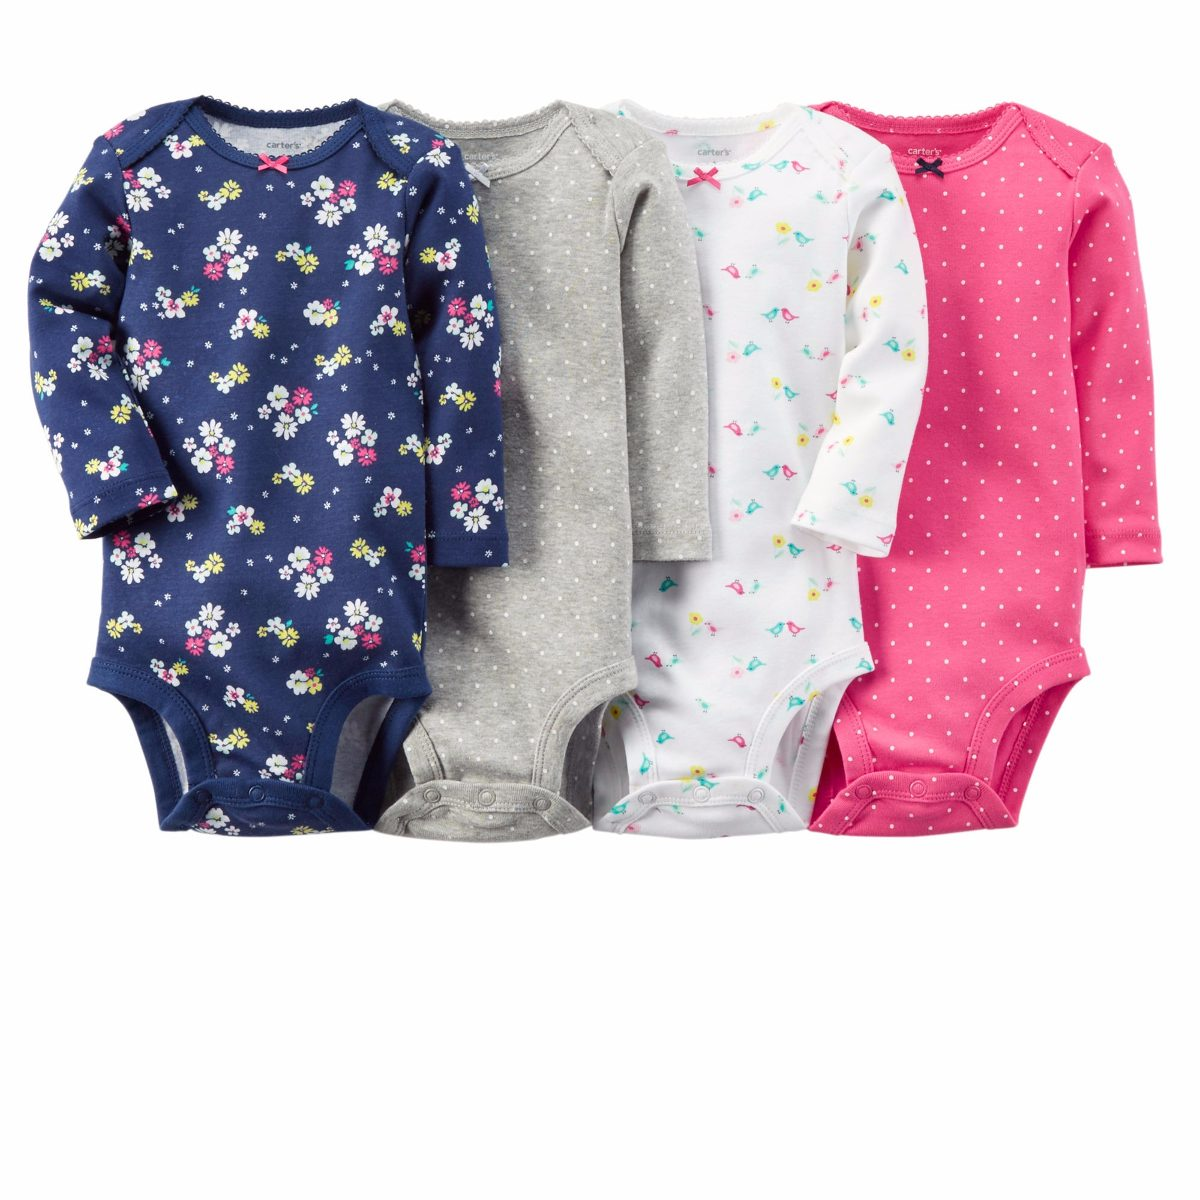 Carter's is a major children's apparel retailer which operates the website skywestern.ga As of today, we have 27 active Carter's promo codes, 1 personal referral code, .